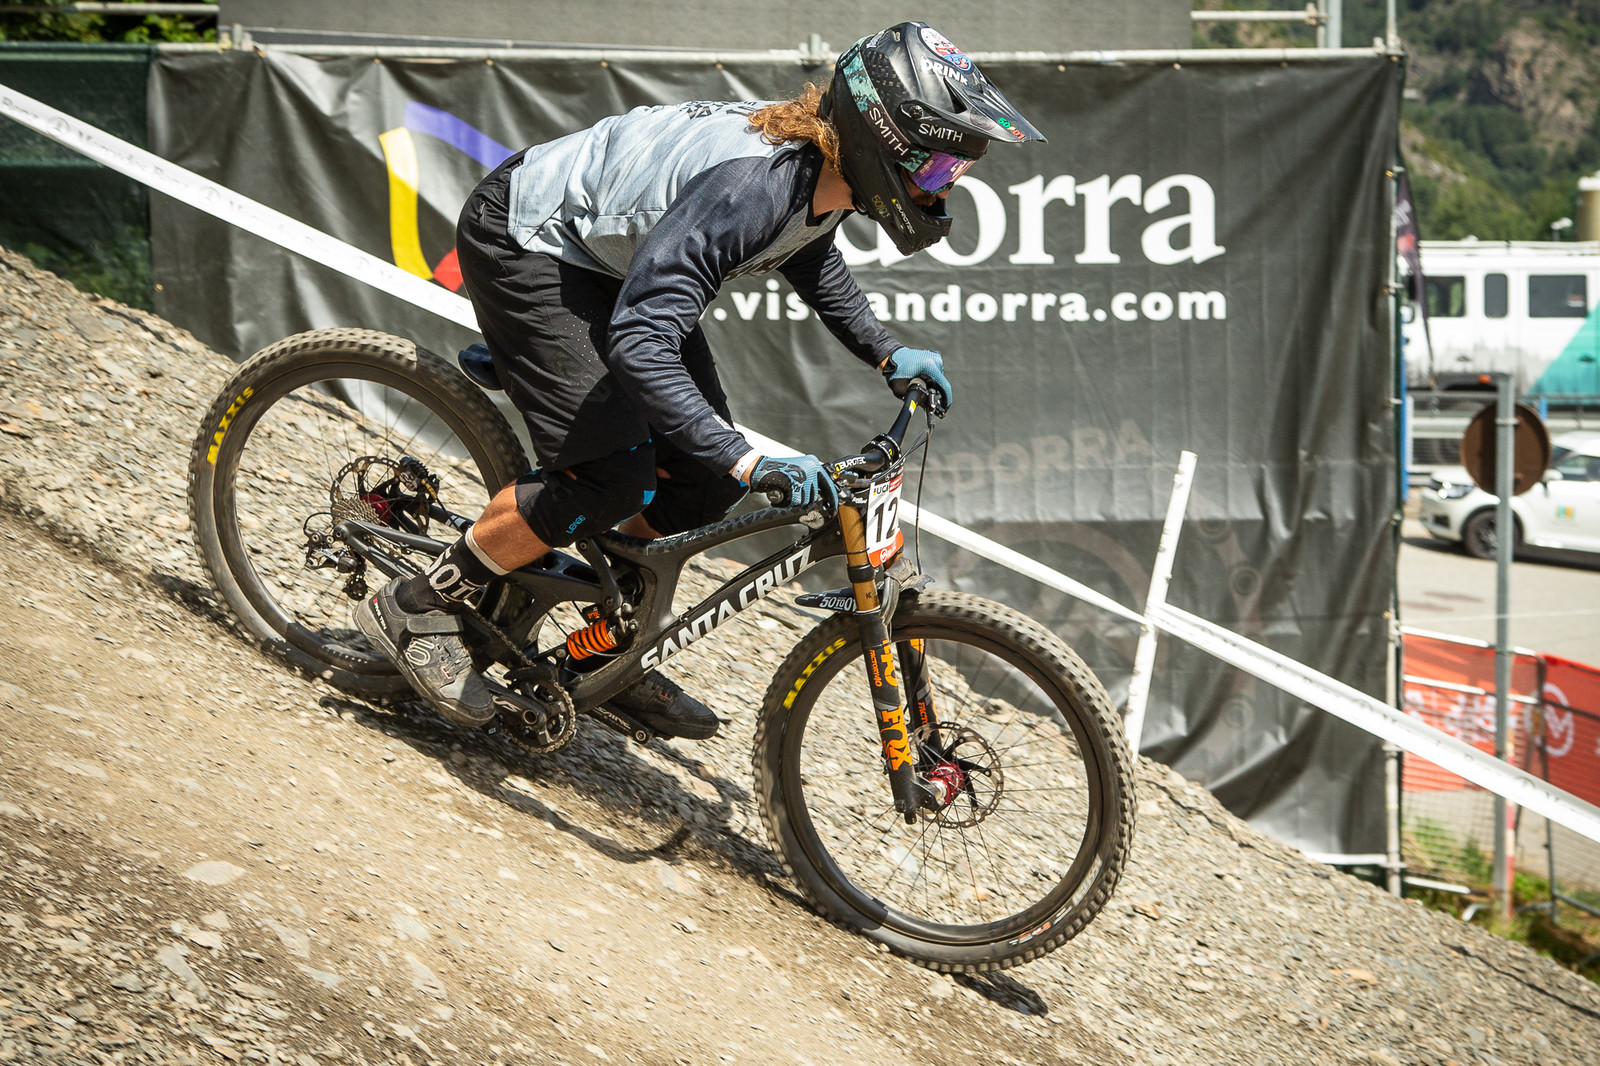 Sam Dale Santa Cruz V10 - G-Out Project - Andorra World Cup DH - Mountain Biking Pictures - Vital MTB